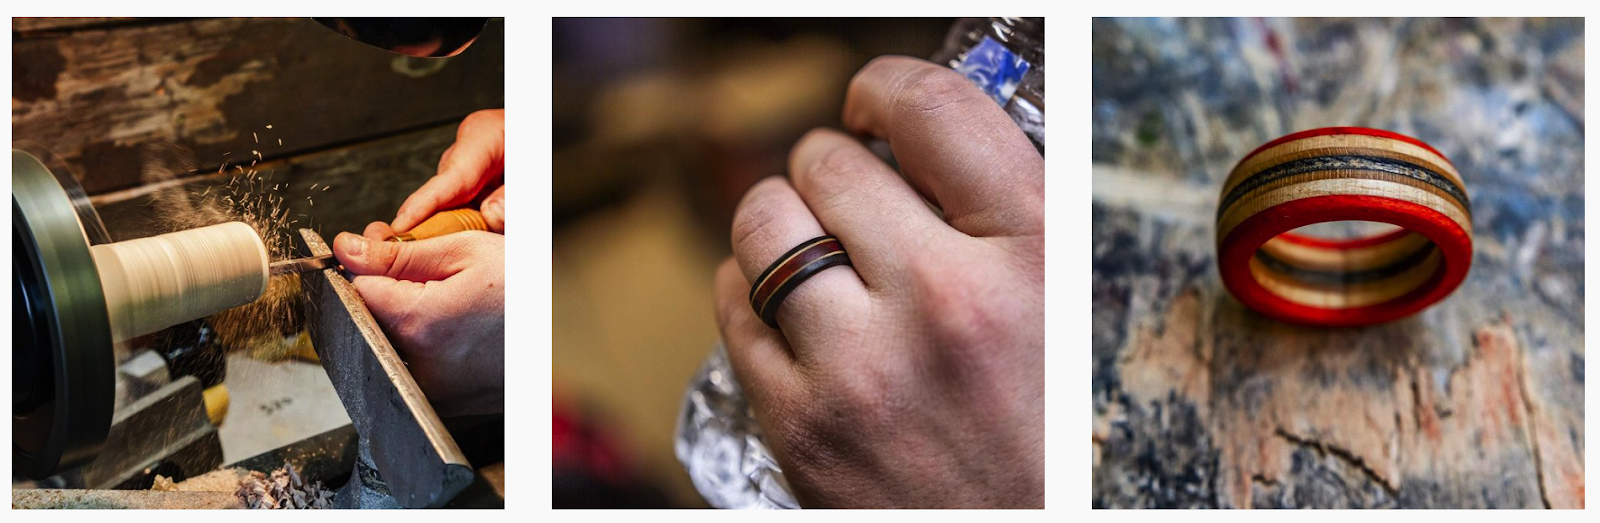 Aviary ring Co | Hand-turned wooden rings | Jewelry Brands Featured on Afluencer